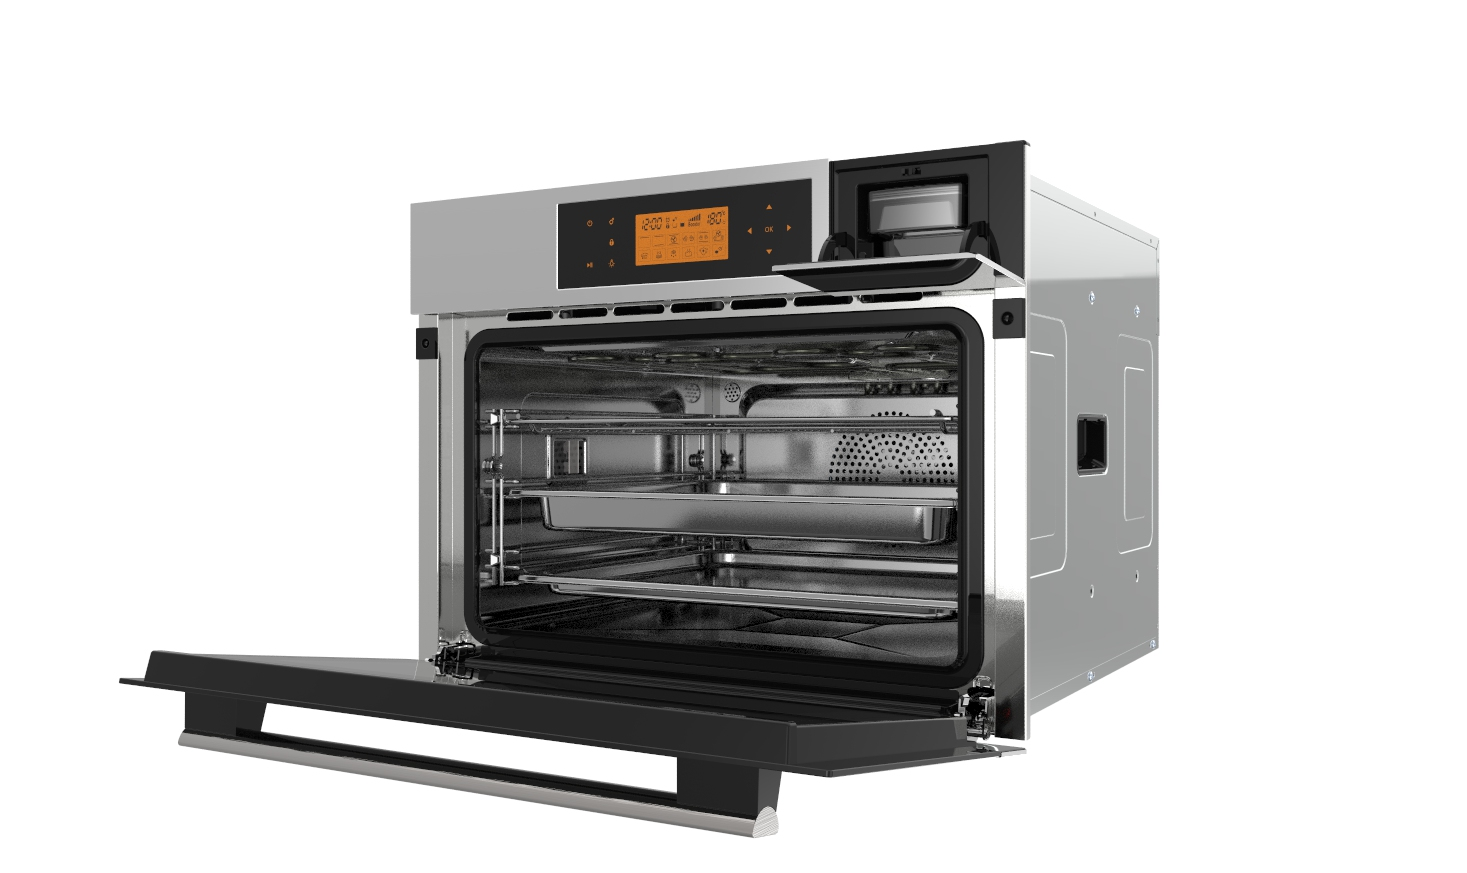 58L single water tank built-in electric steam oven